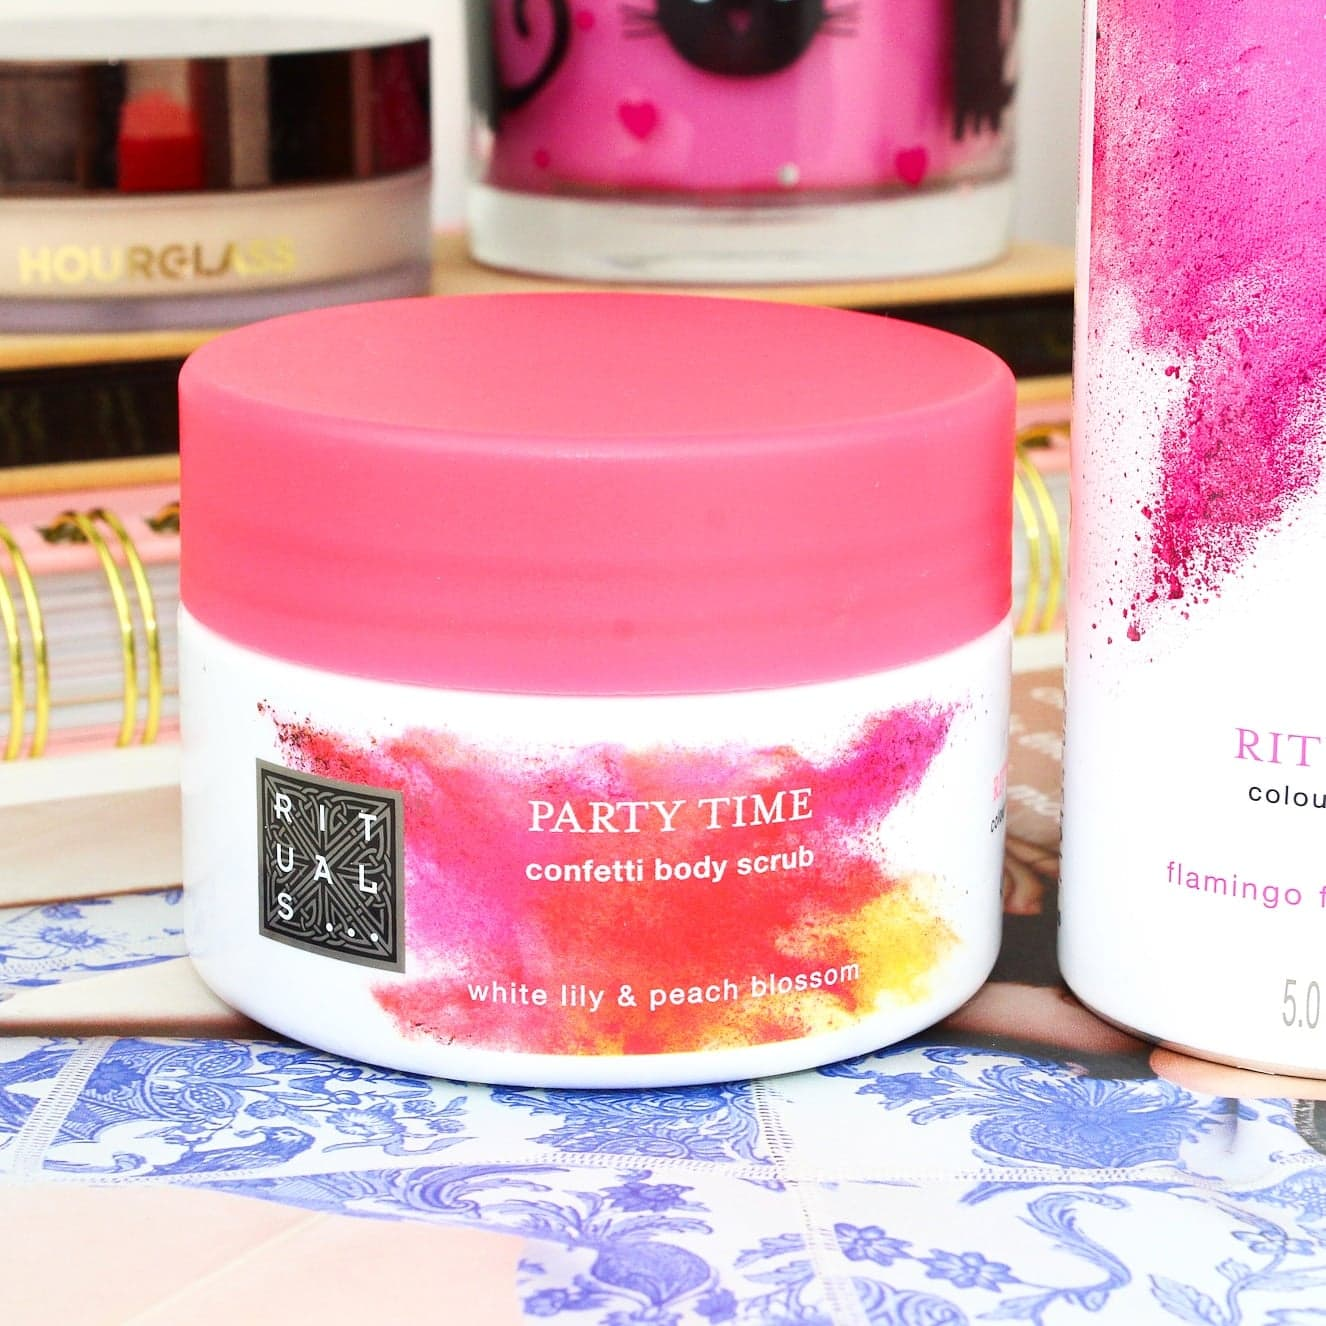 The Ritual Of Holi | A Colourful Collection of Bath Treats from Rituals